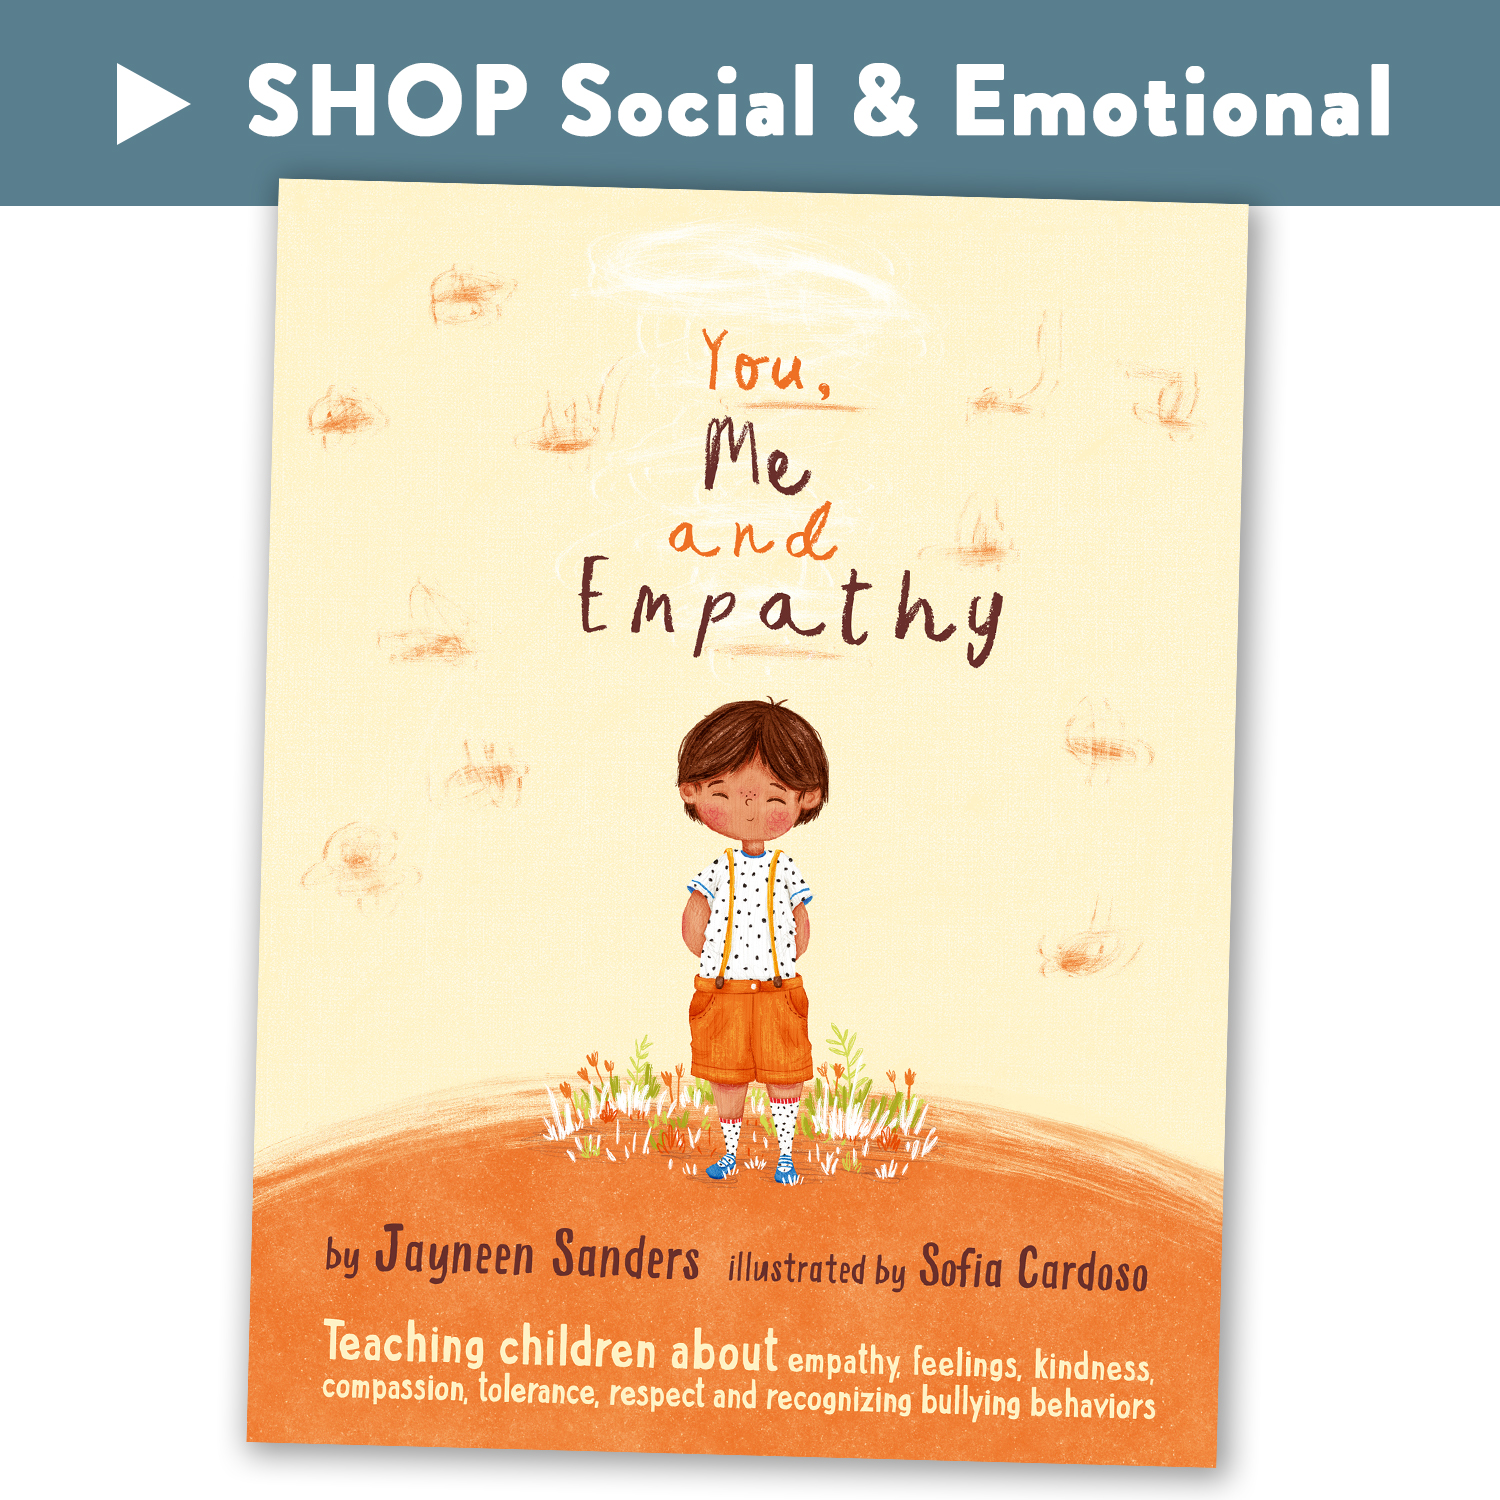 E2E_shop_SocialEmotional_4-YME.jpg